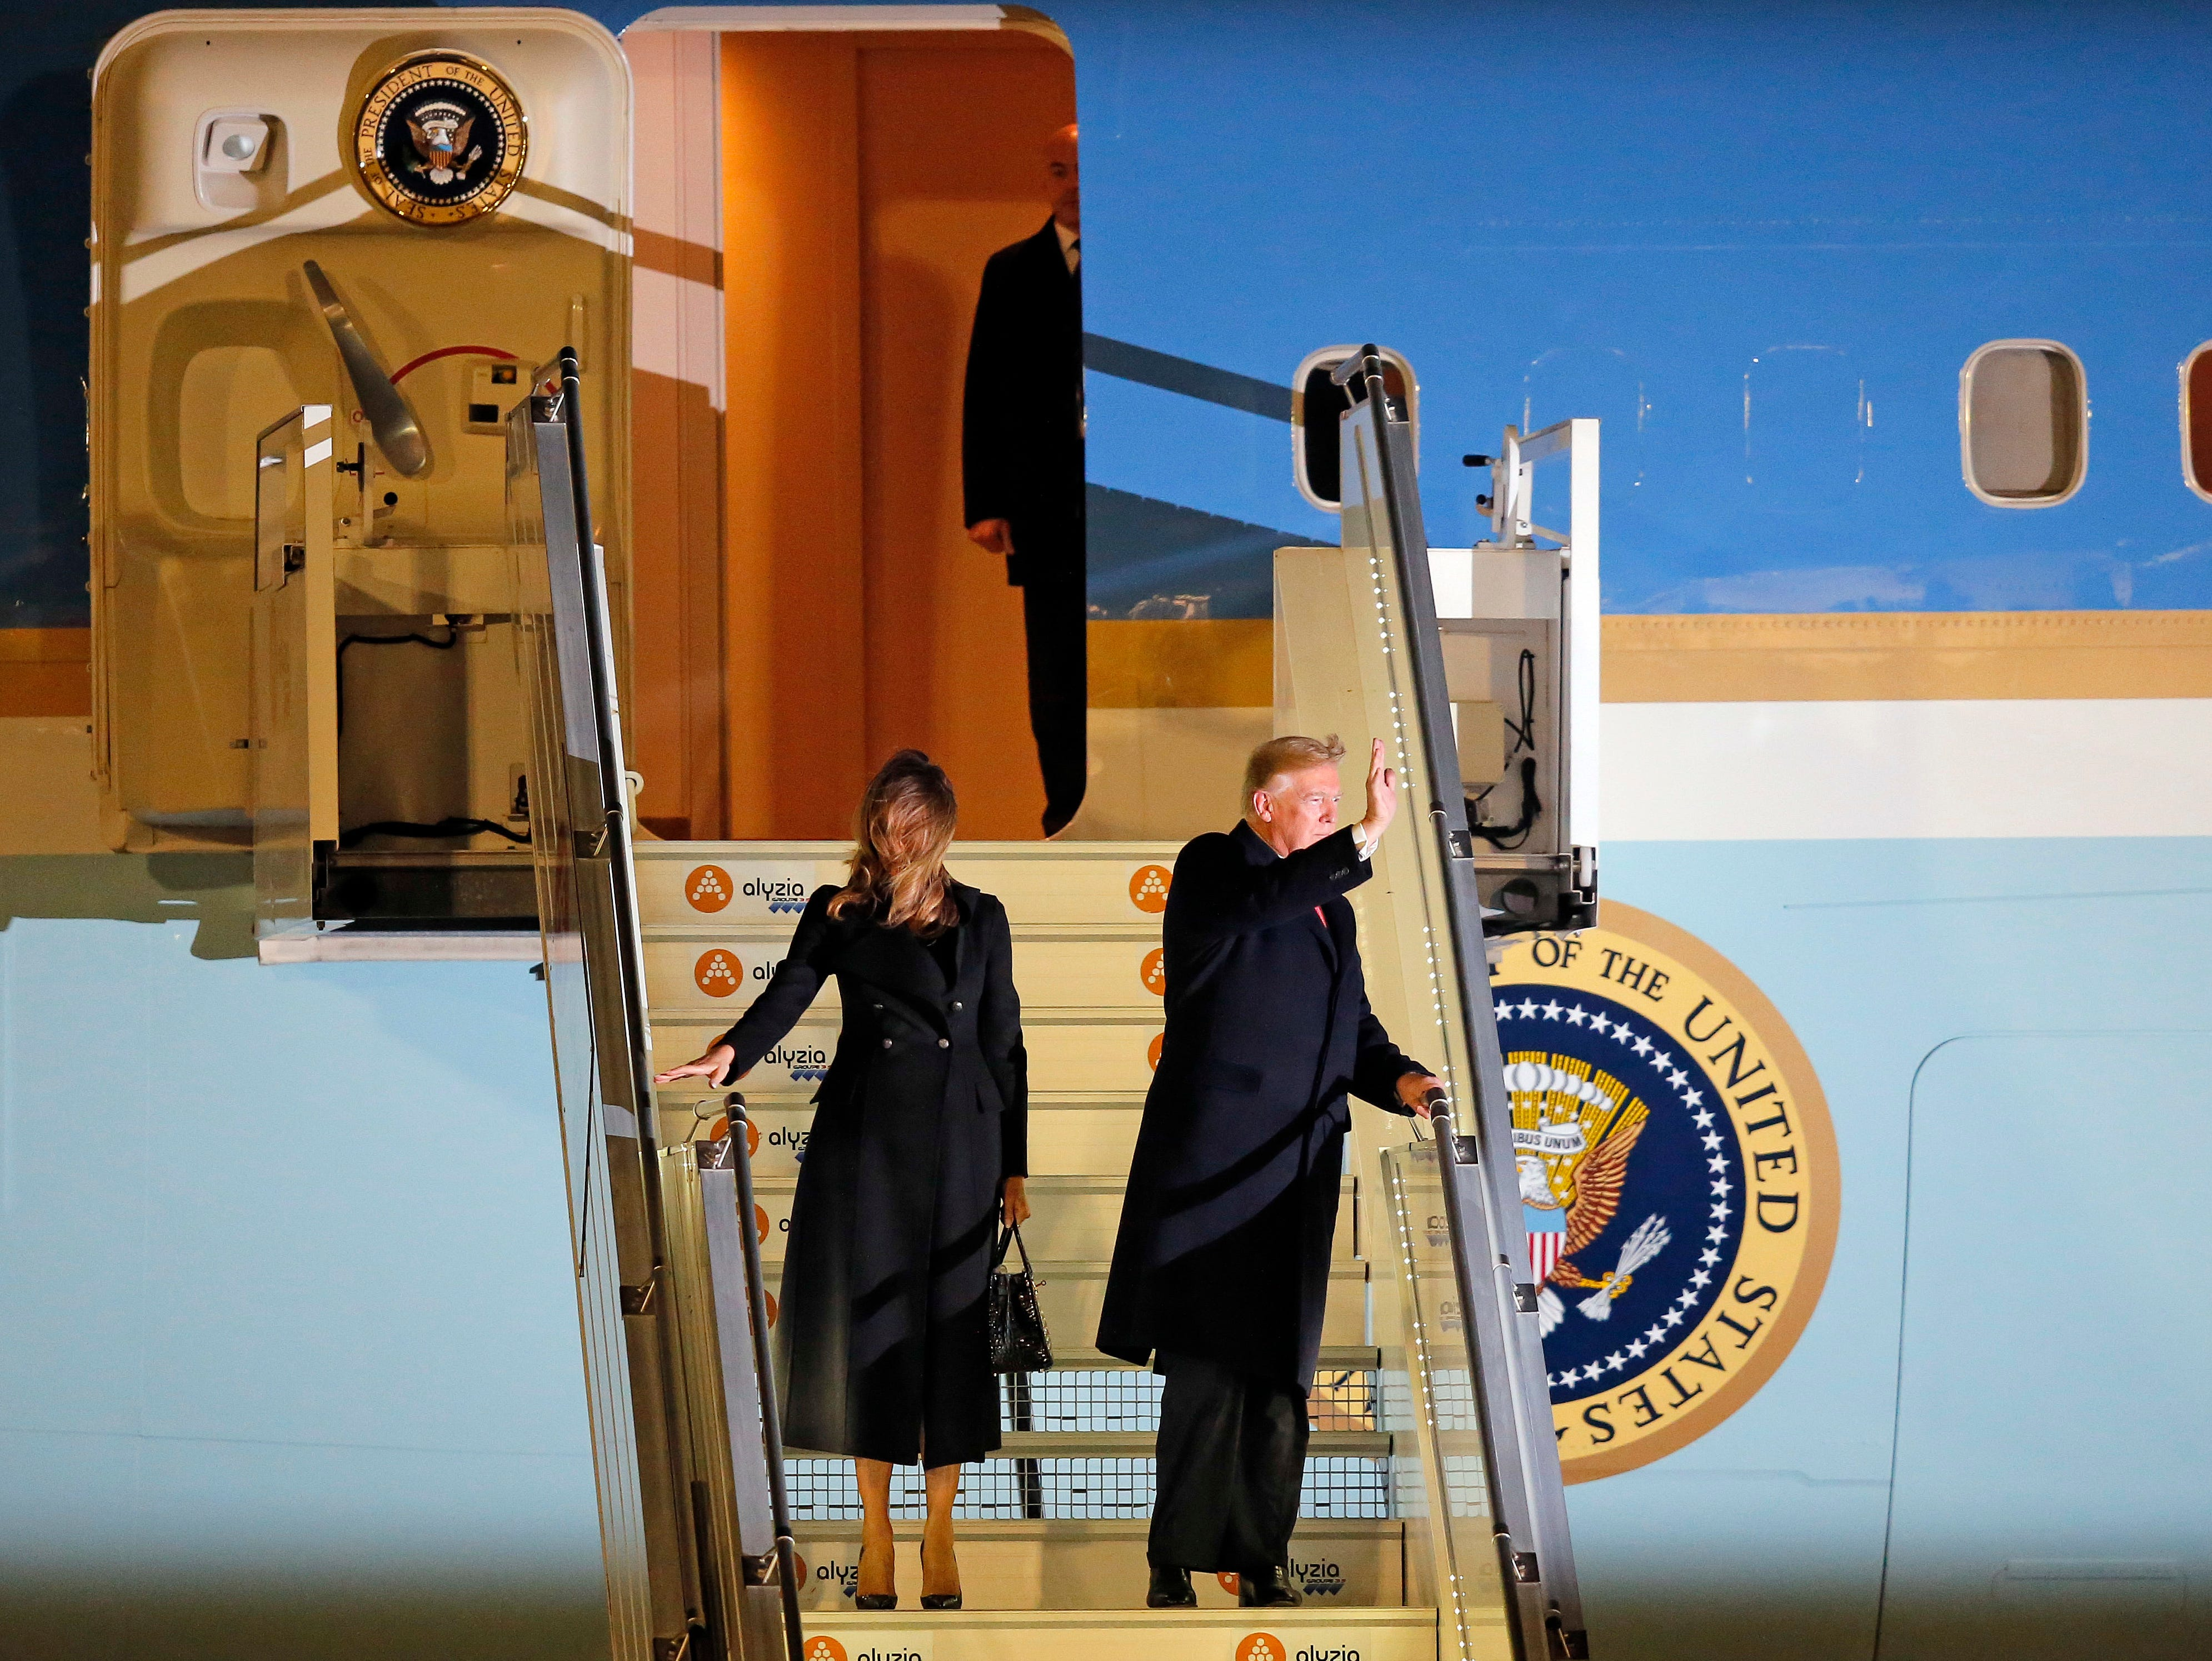 President Donald Trump and first lady Melania Trump alight from Air Force One, after arriving at Orly airport near Paris, Friday, Nov. 9, 2018. Trump is joining other world leaders at centennial commemorations in Paris this weekend to mark the end of World War I.